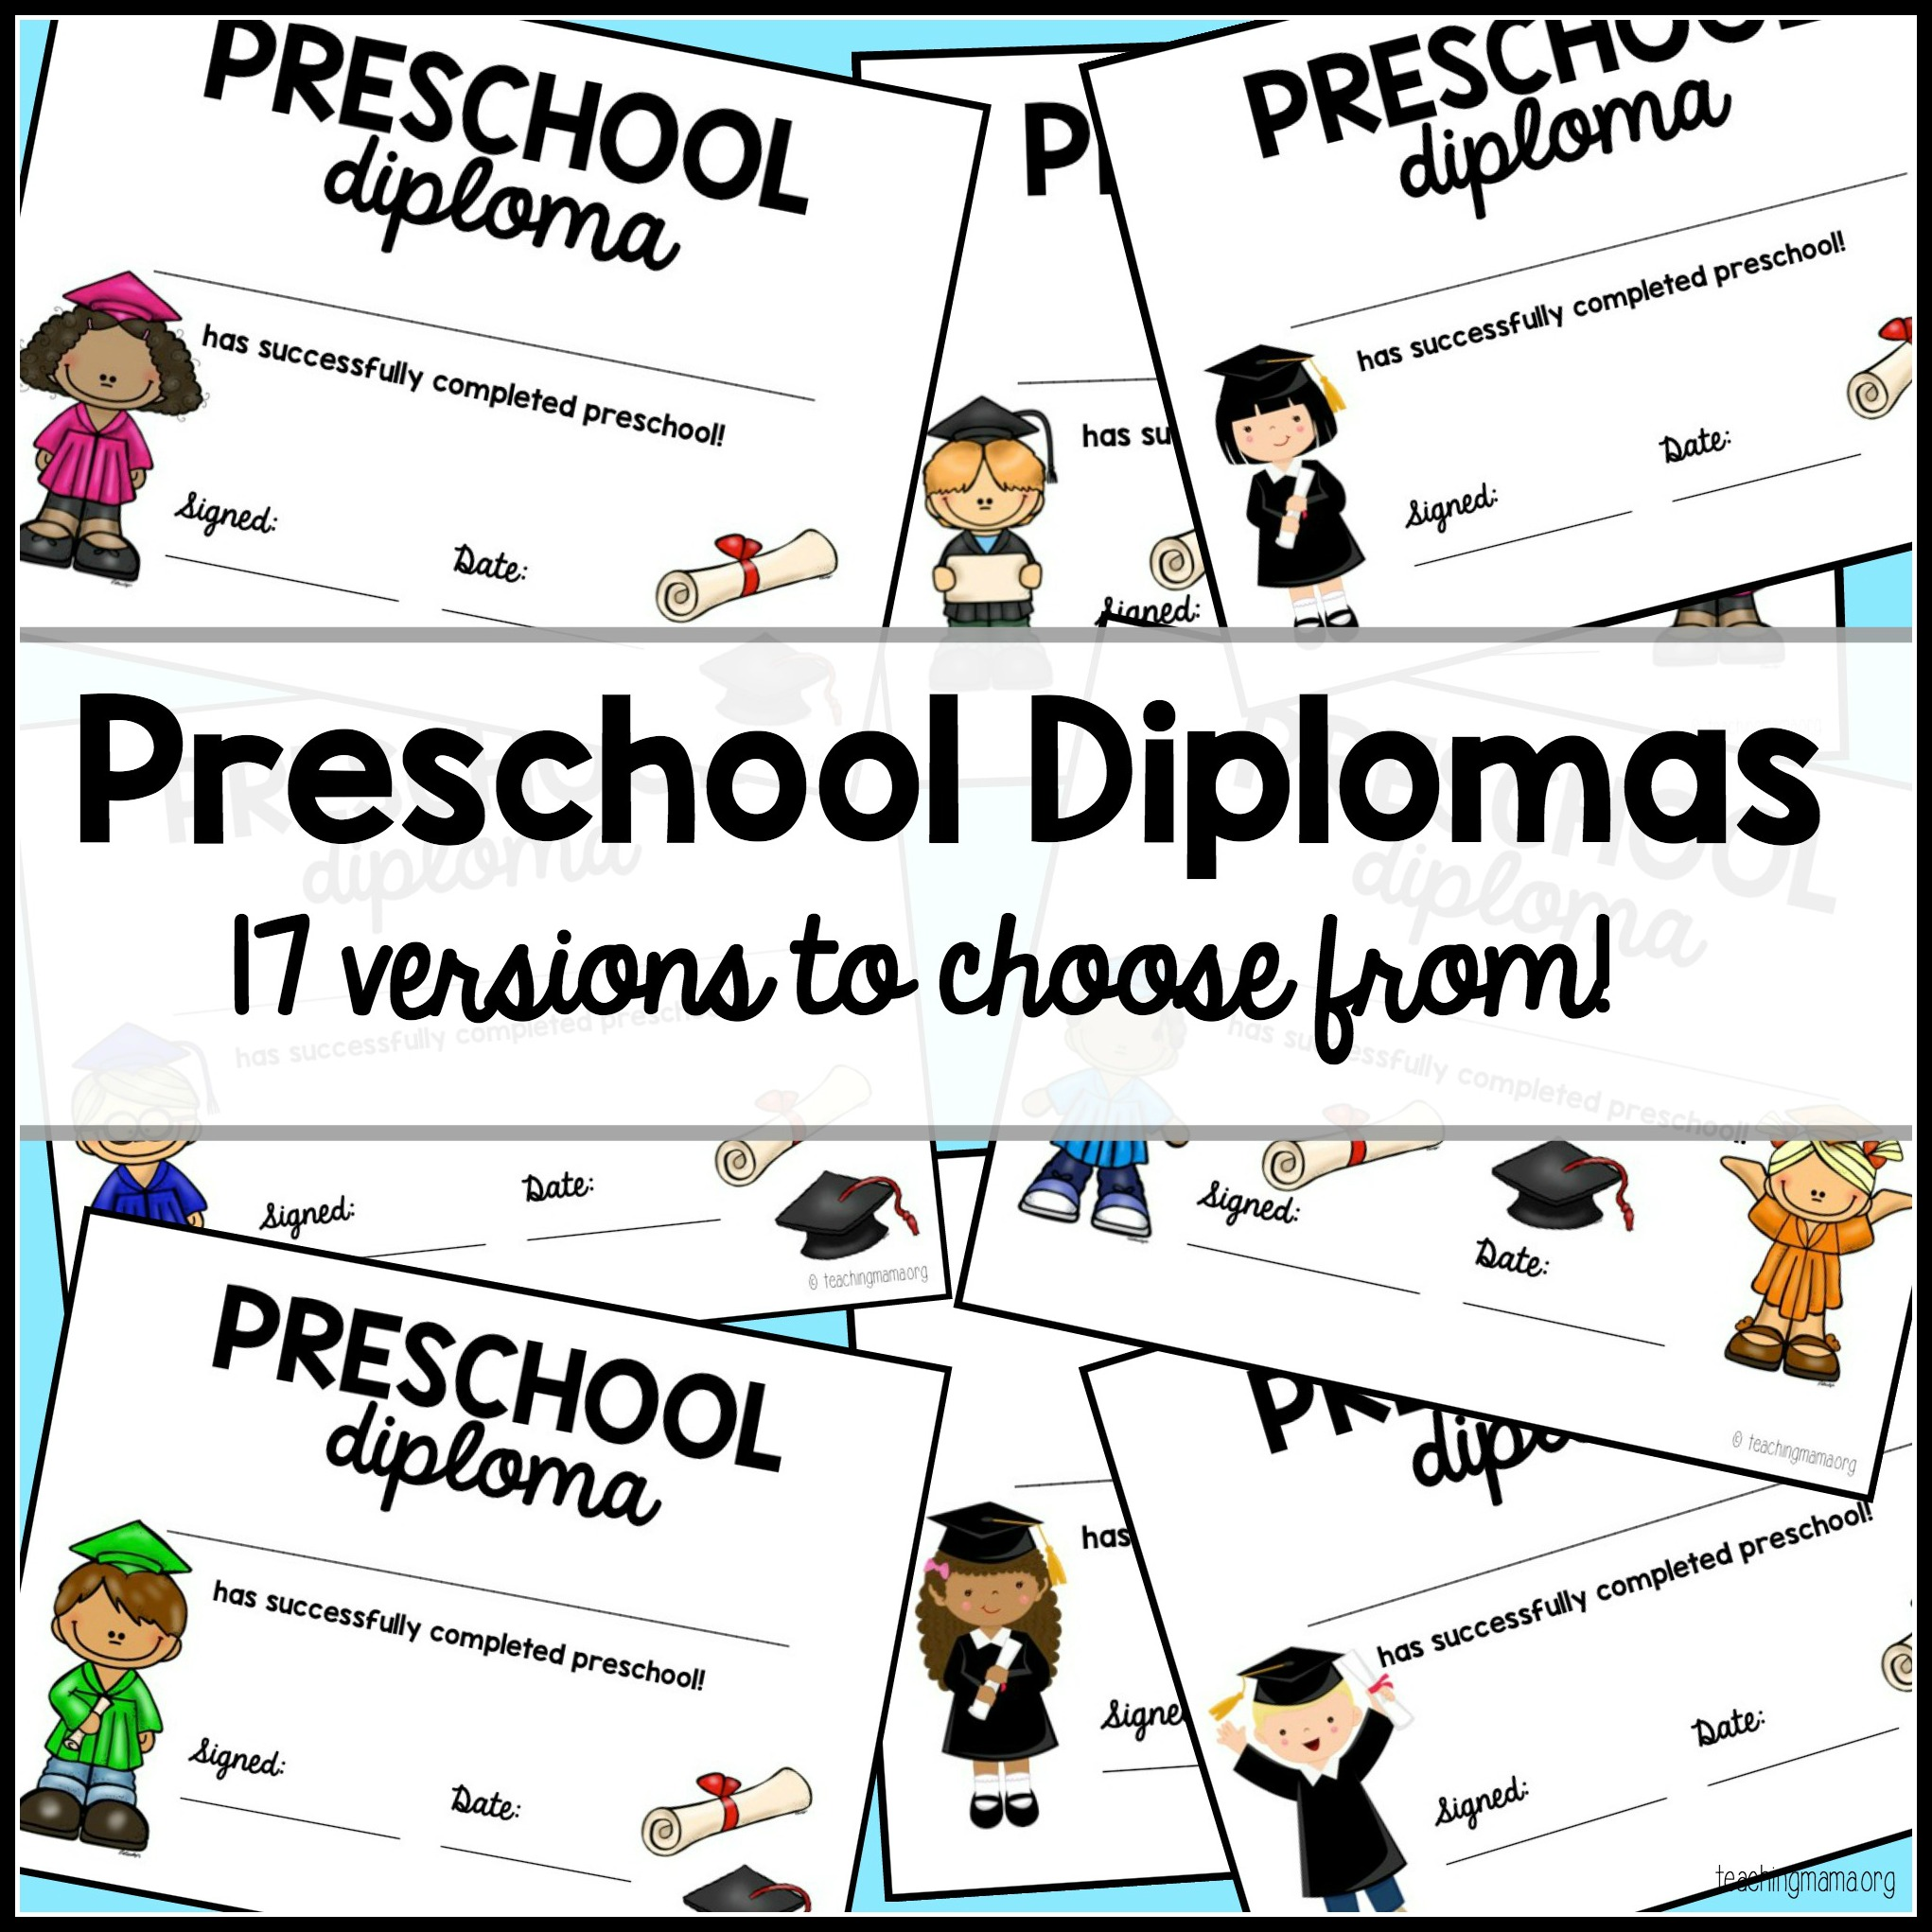 Indulging I Want To Share You My Preschool Graduation Re Versions To Print That Feature Different Preschool Graduation Ideas Preschool Graduation Ideas Pinterest Preschool Graduation Ideas Mes ideas Preschool Graduation Ideas